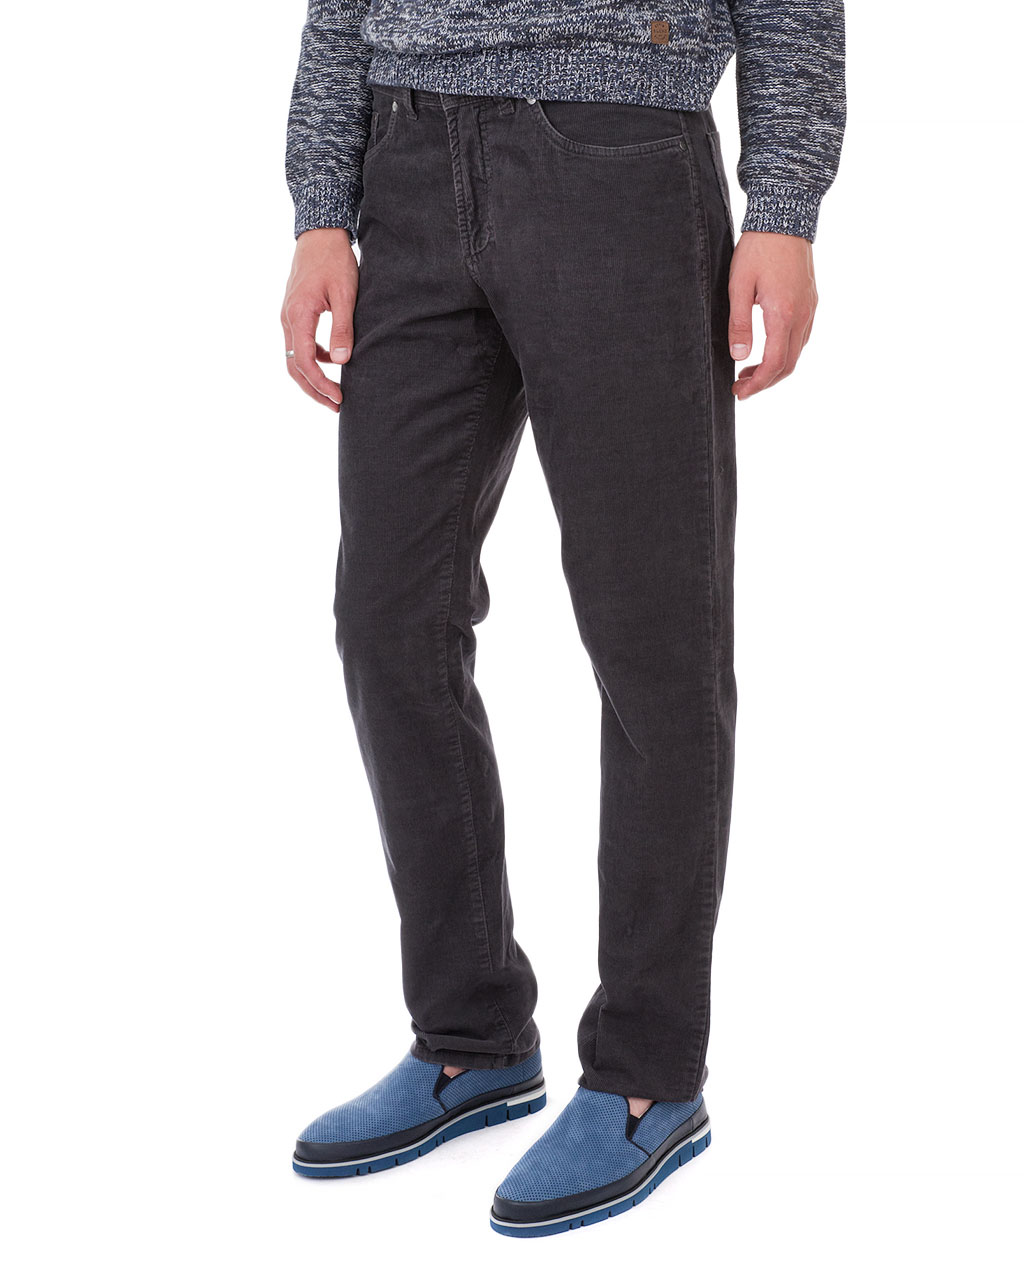 Men's trousers NEVIO-8 43124-98/19-20 (3)